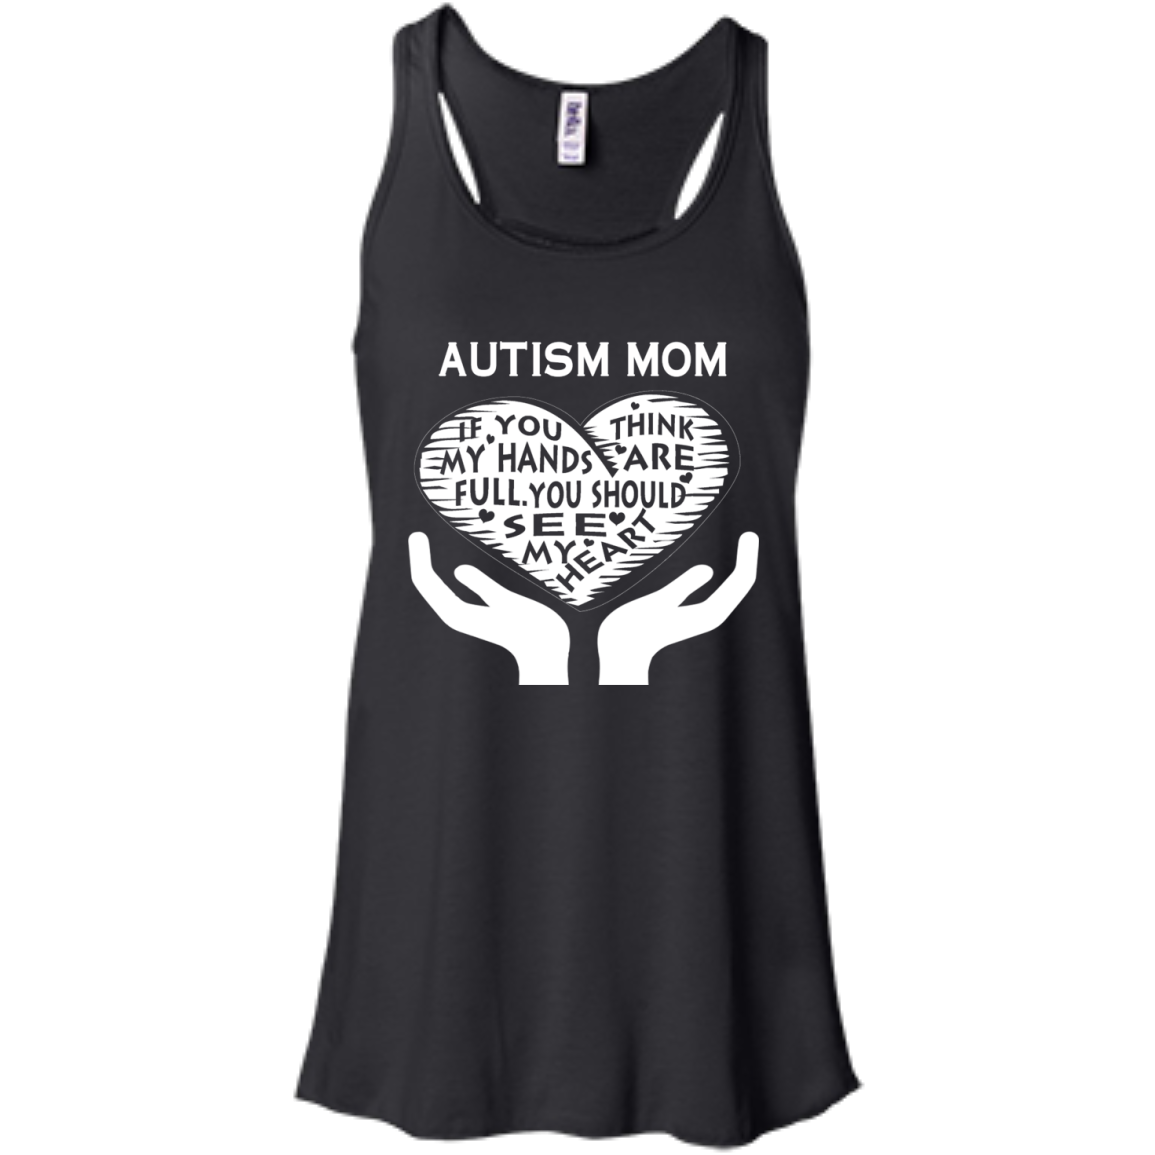 AUTISM Awareness MOM T-SHIRTS HOODIES If You Think My Hands Are Full... - The Sun Cat